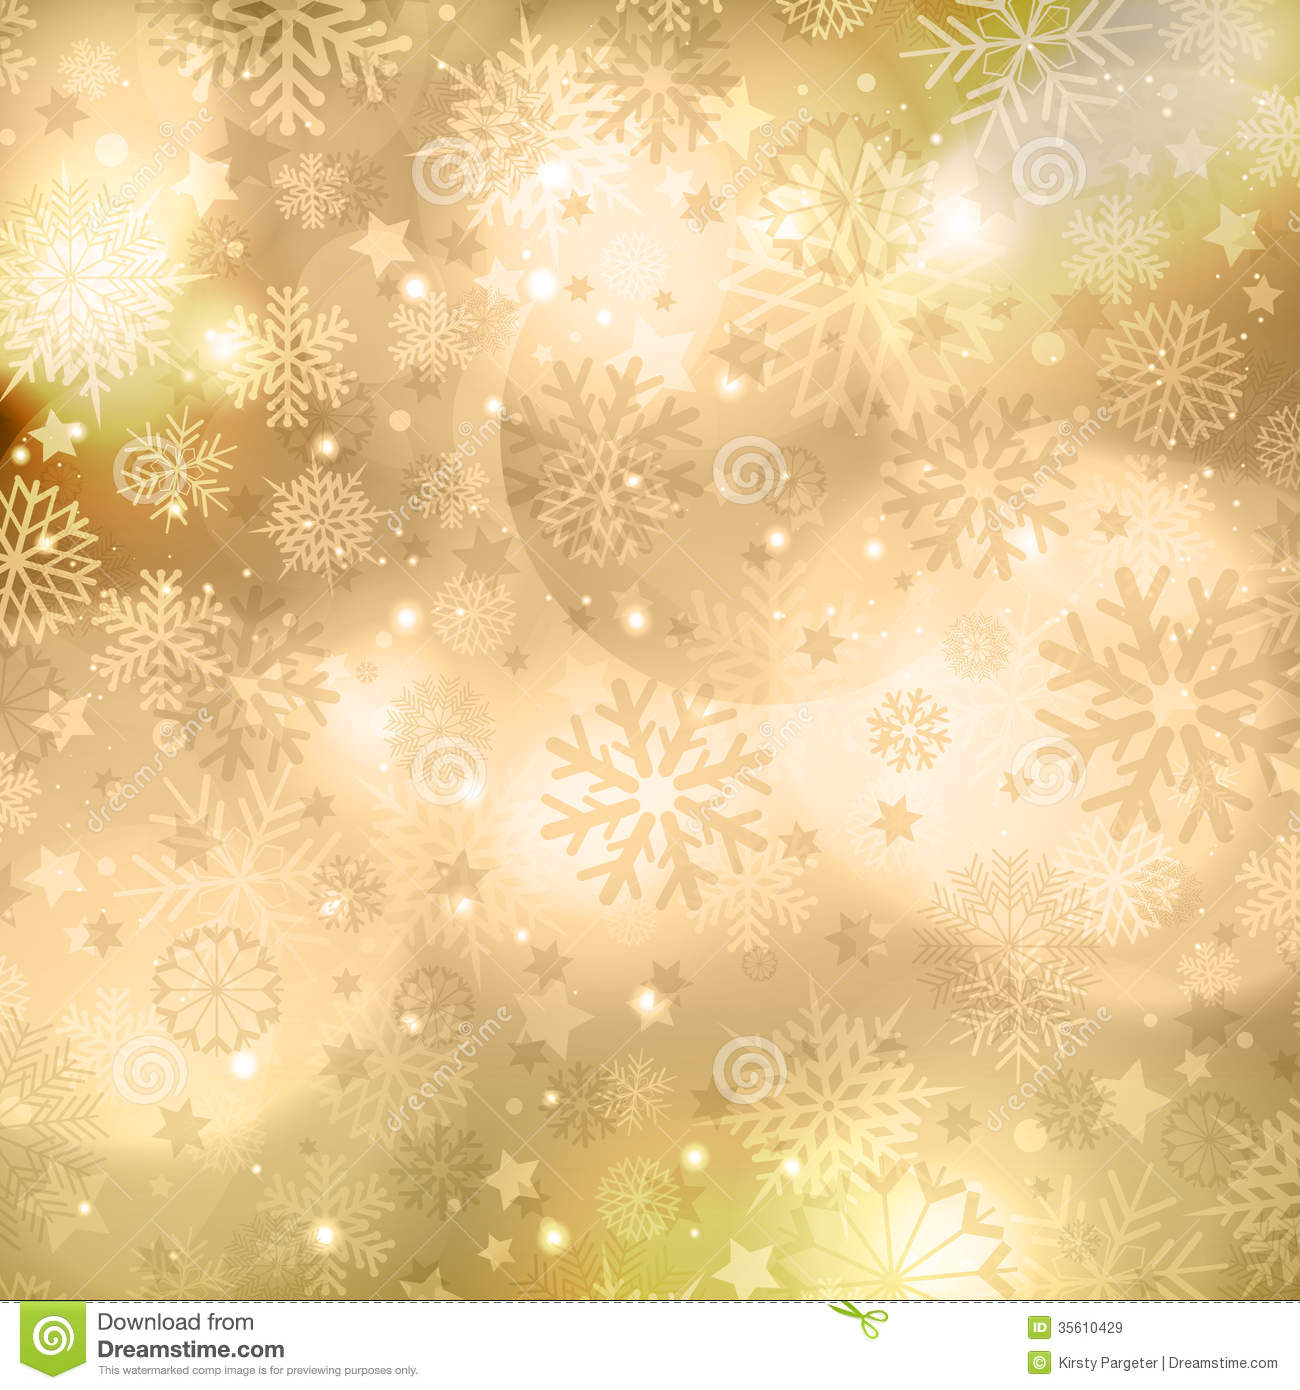 gold christmas snowflake wallpaper - photo #37